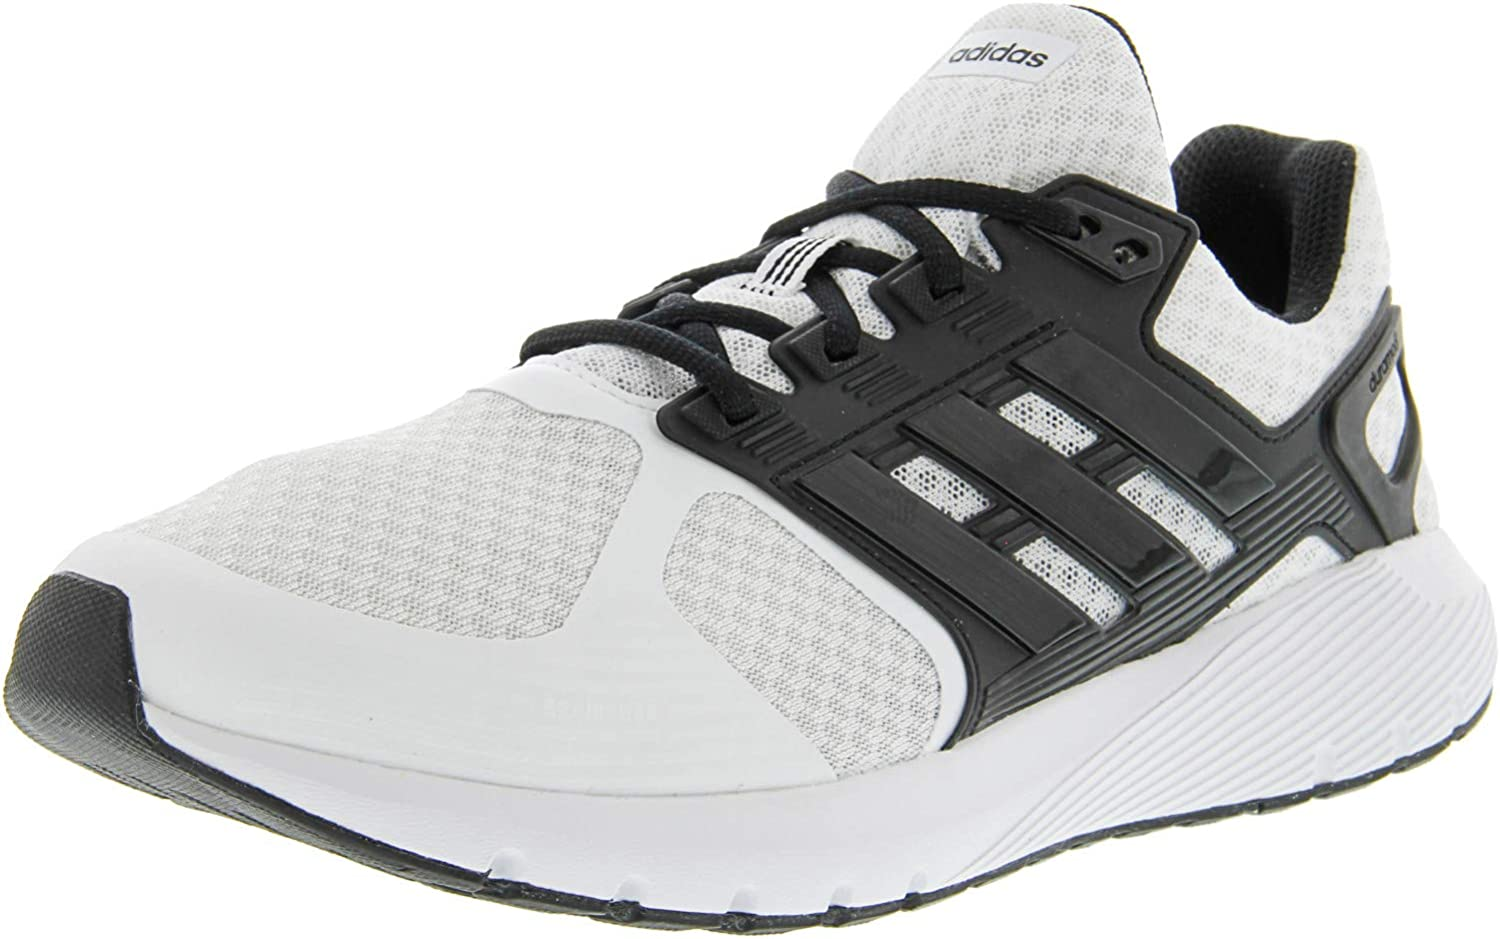 Adidas Men's Duramo 8 Ankle-High Running shoes